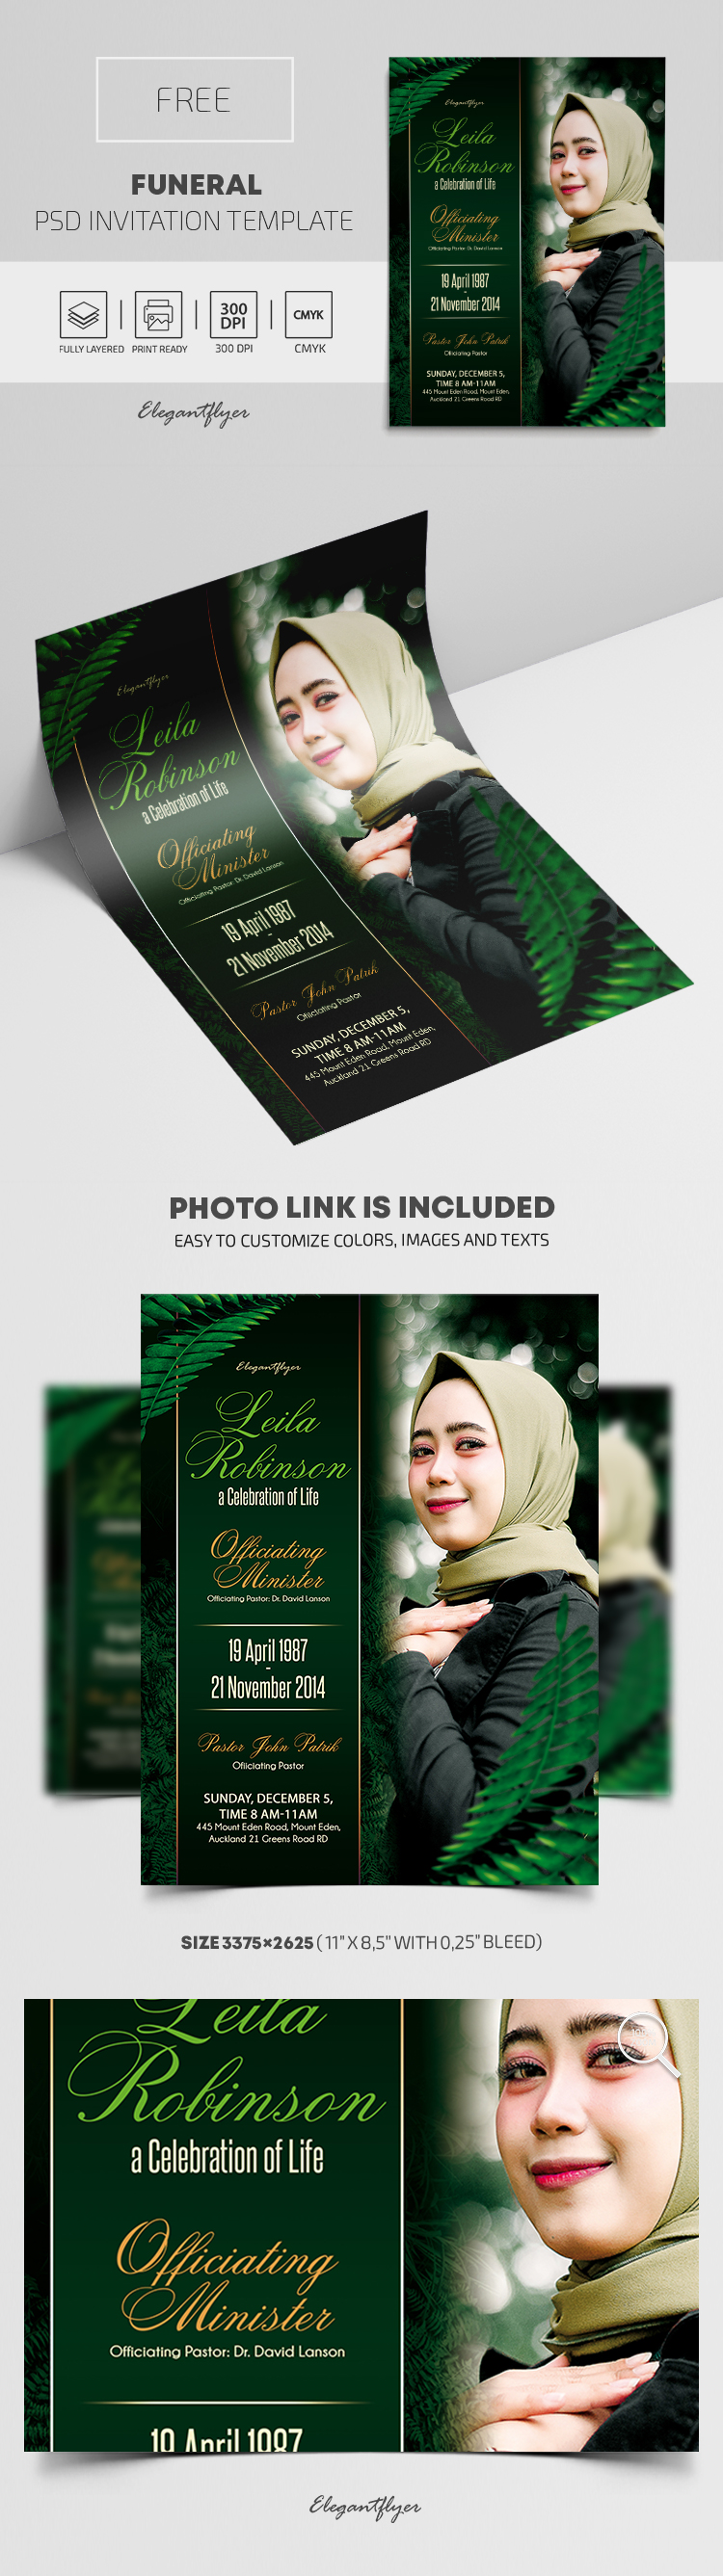 Free Funeral Invitation PSD Template